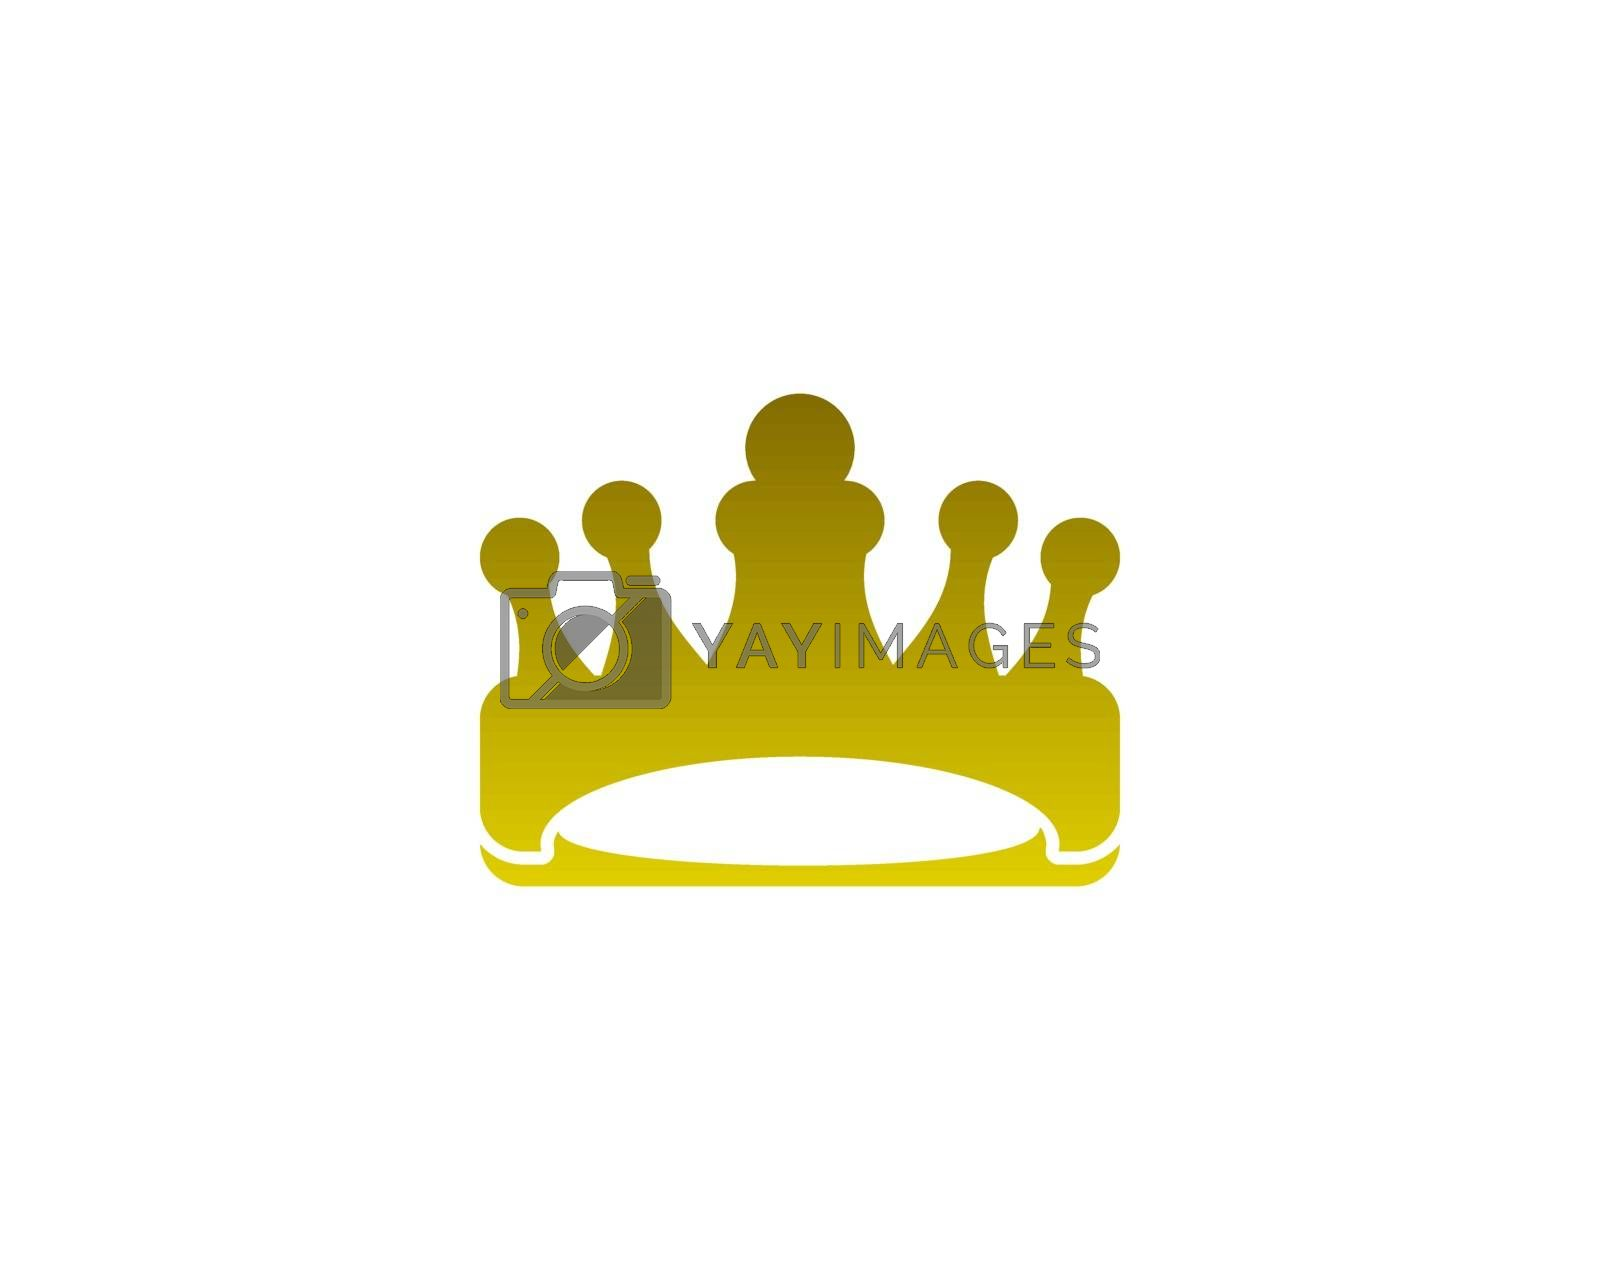 is a symbol associated with the crown of a kingdom